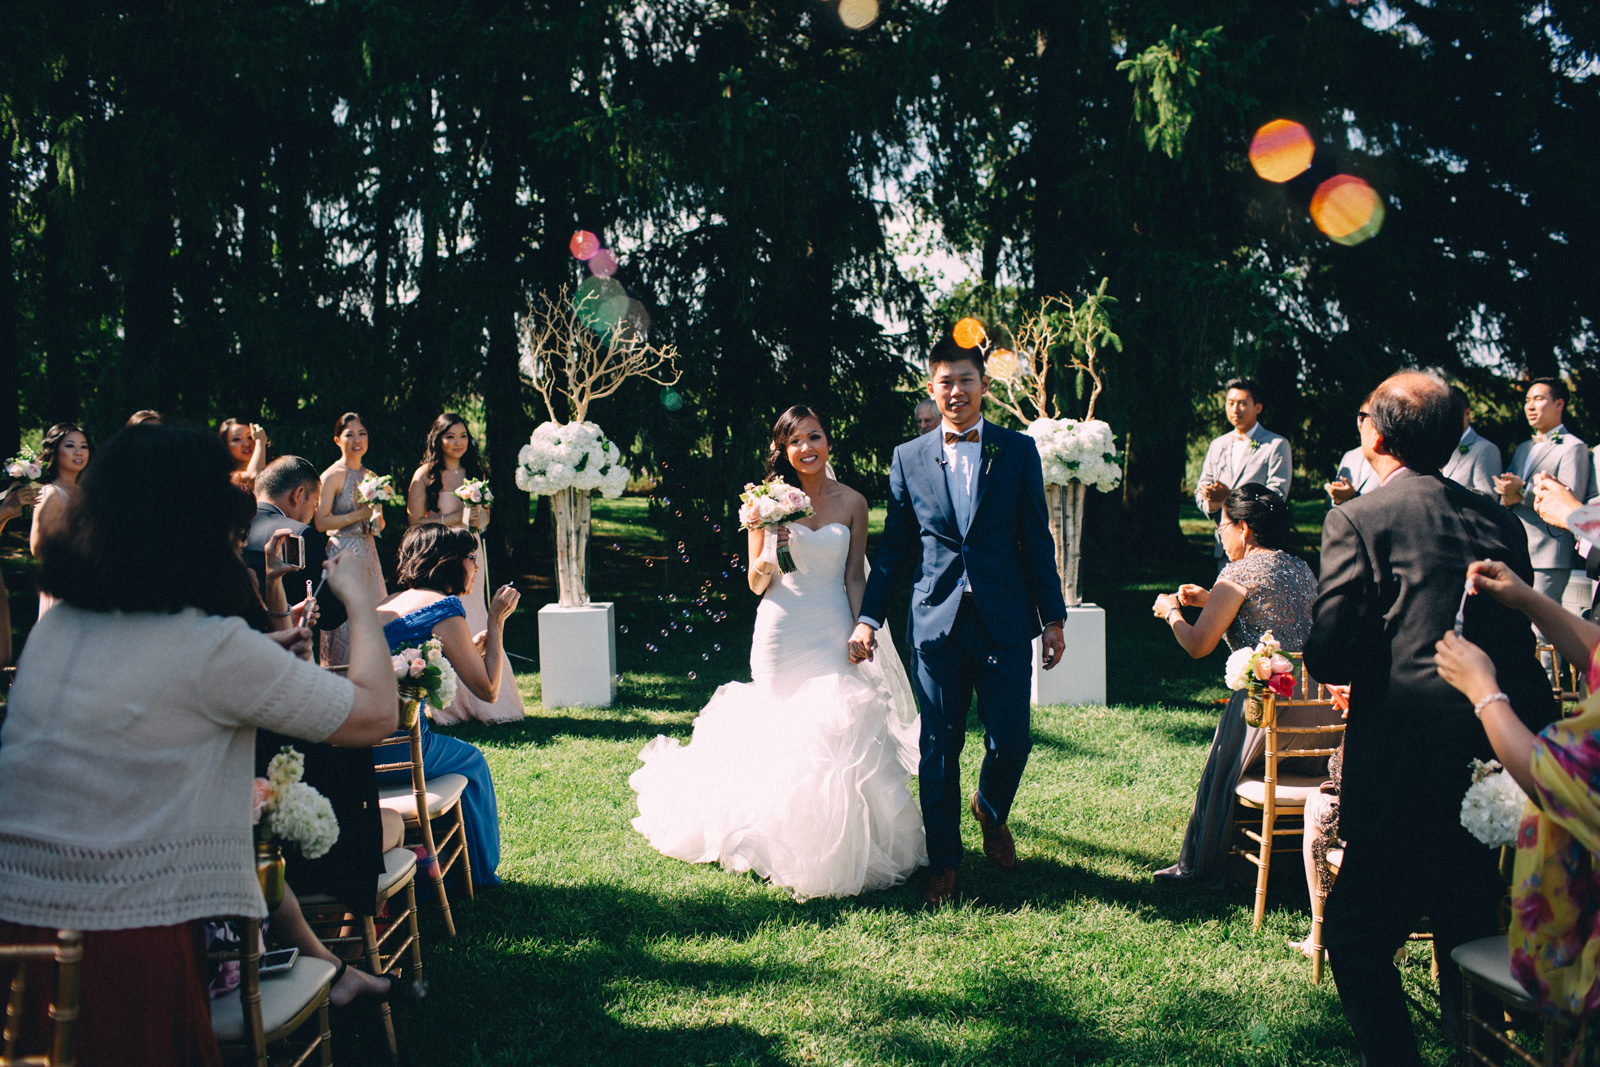 Cambium-Farms-wedding-photography-by-Sam-Wong-of-Artanis-Collective_38.jpg